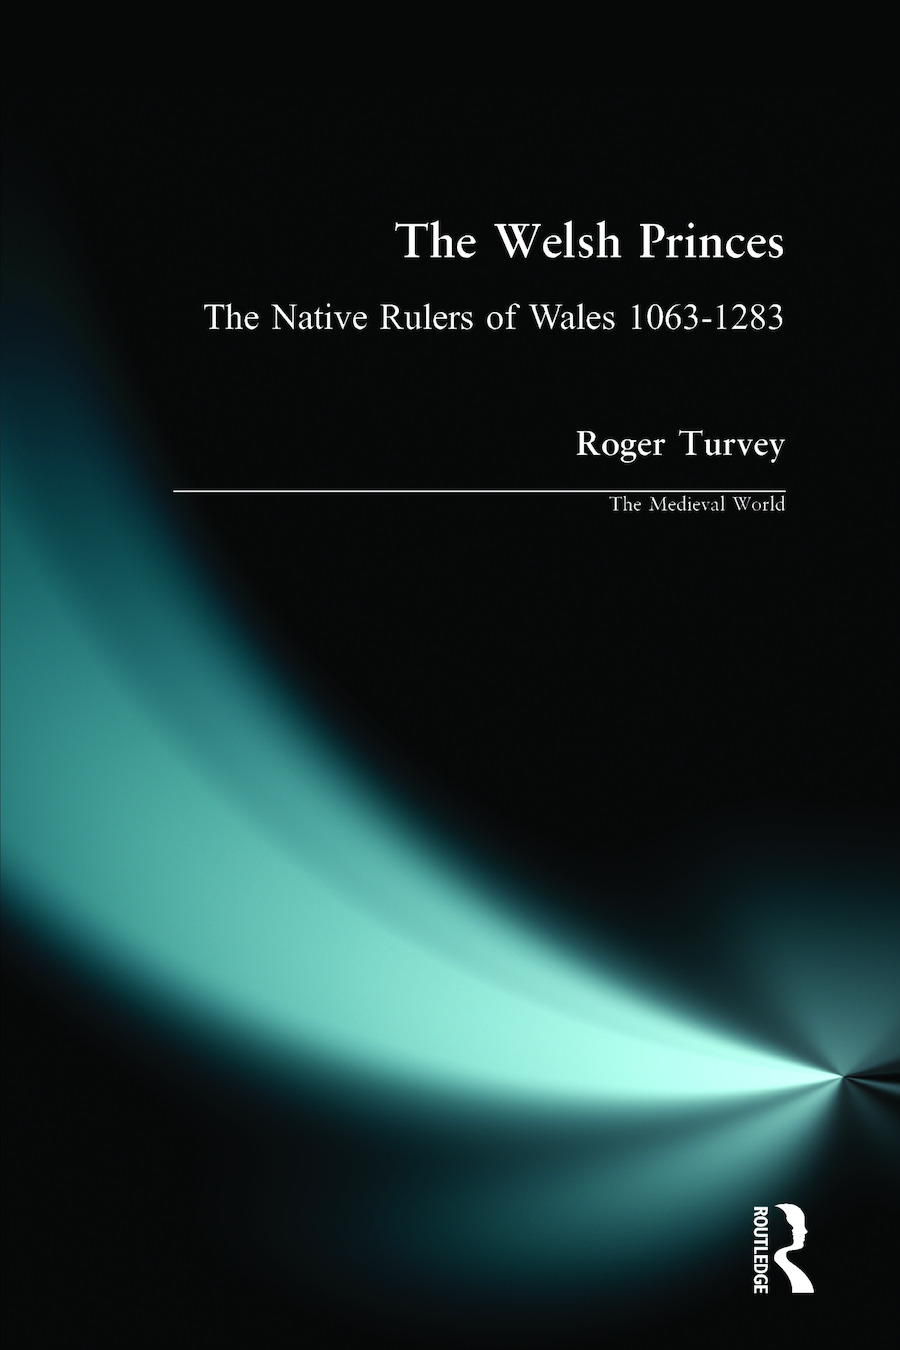 The Welsh Princes: The Native Rulers of Wales 1063-1283 book cover